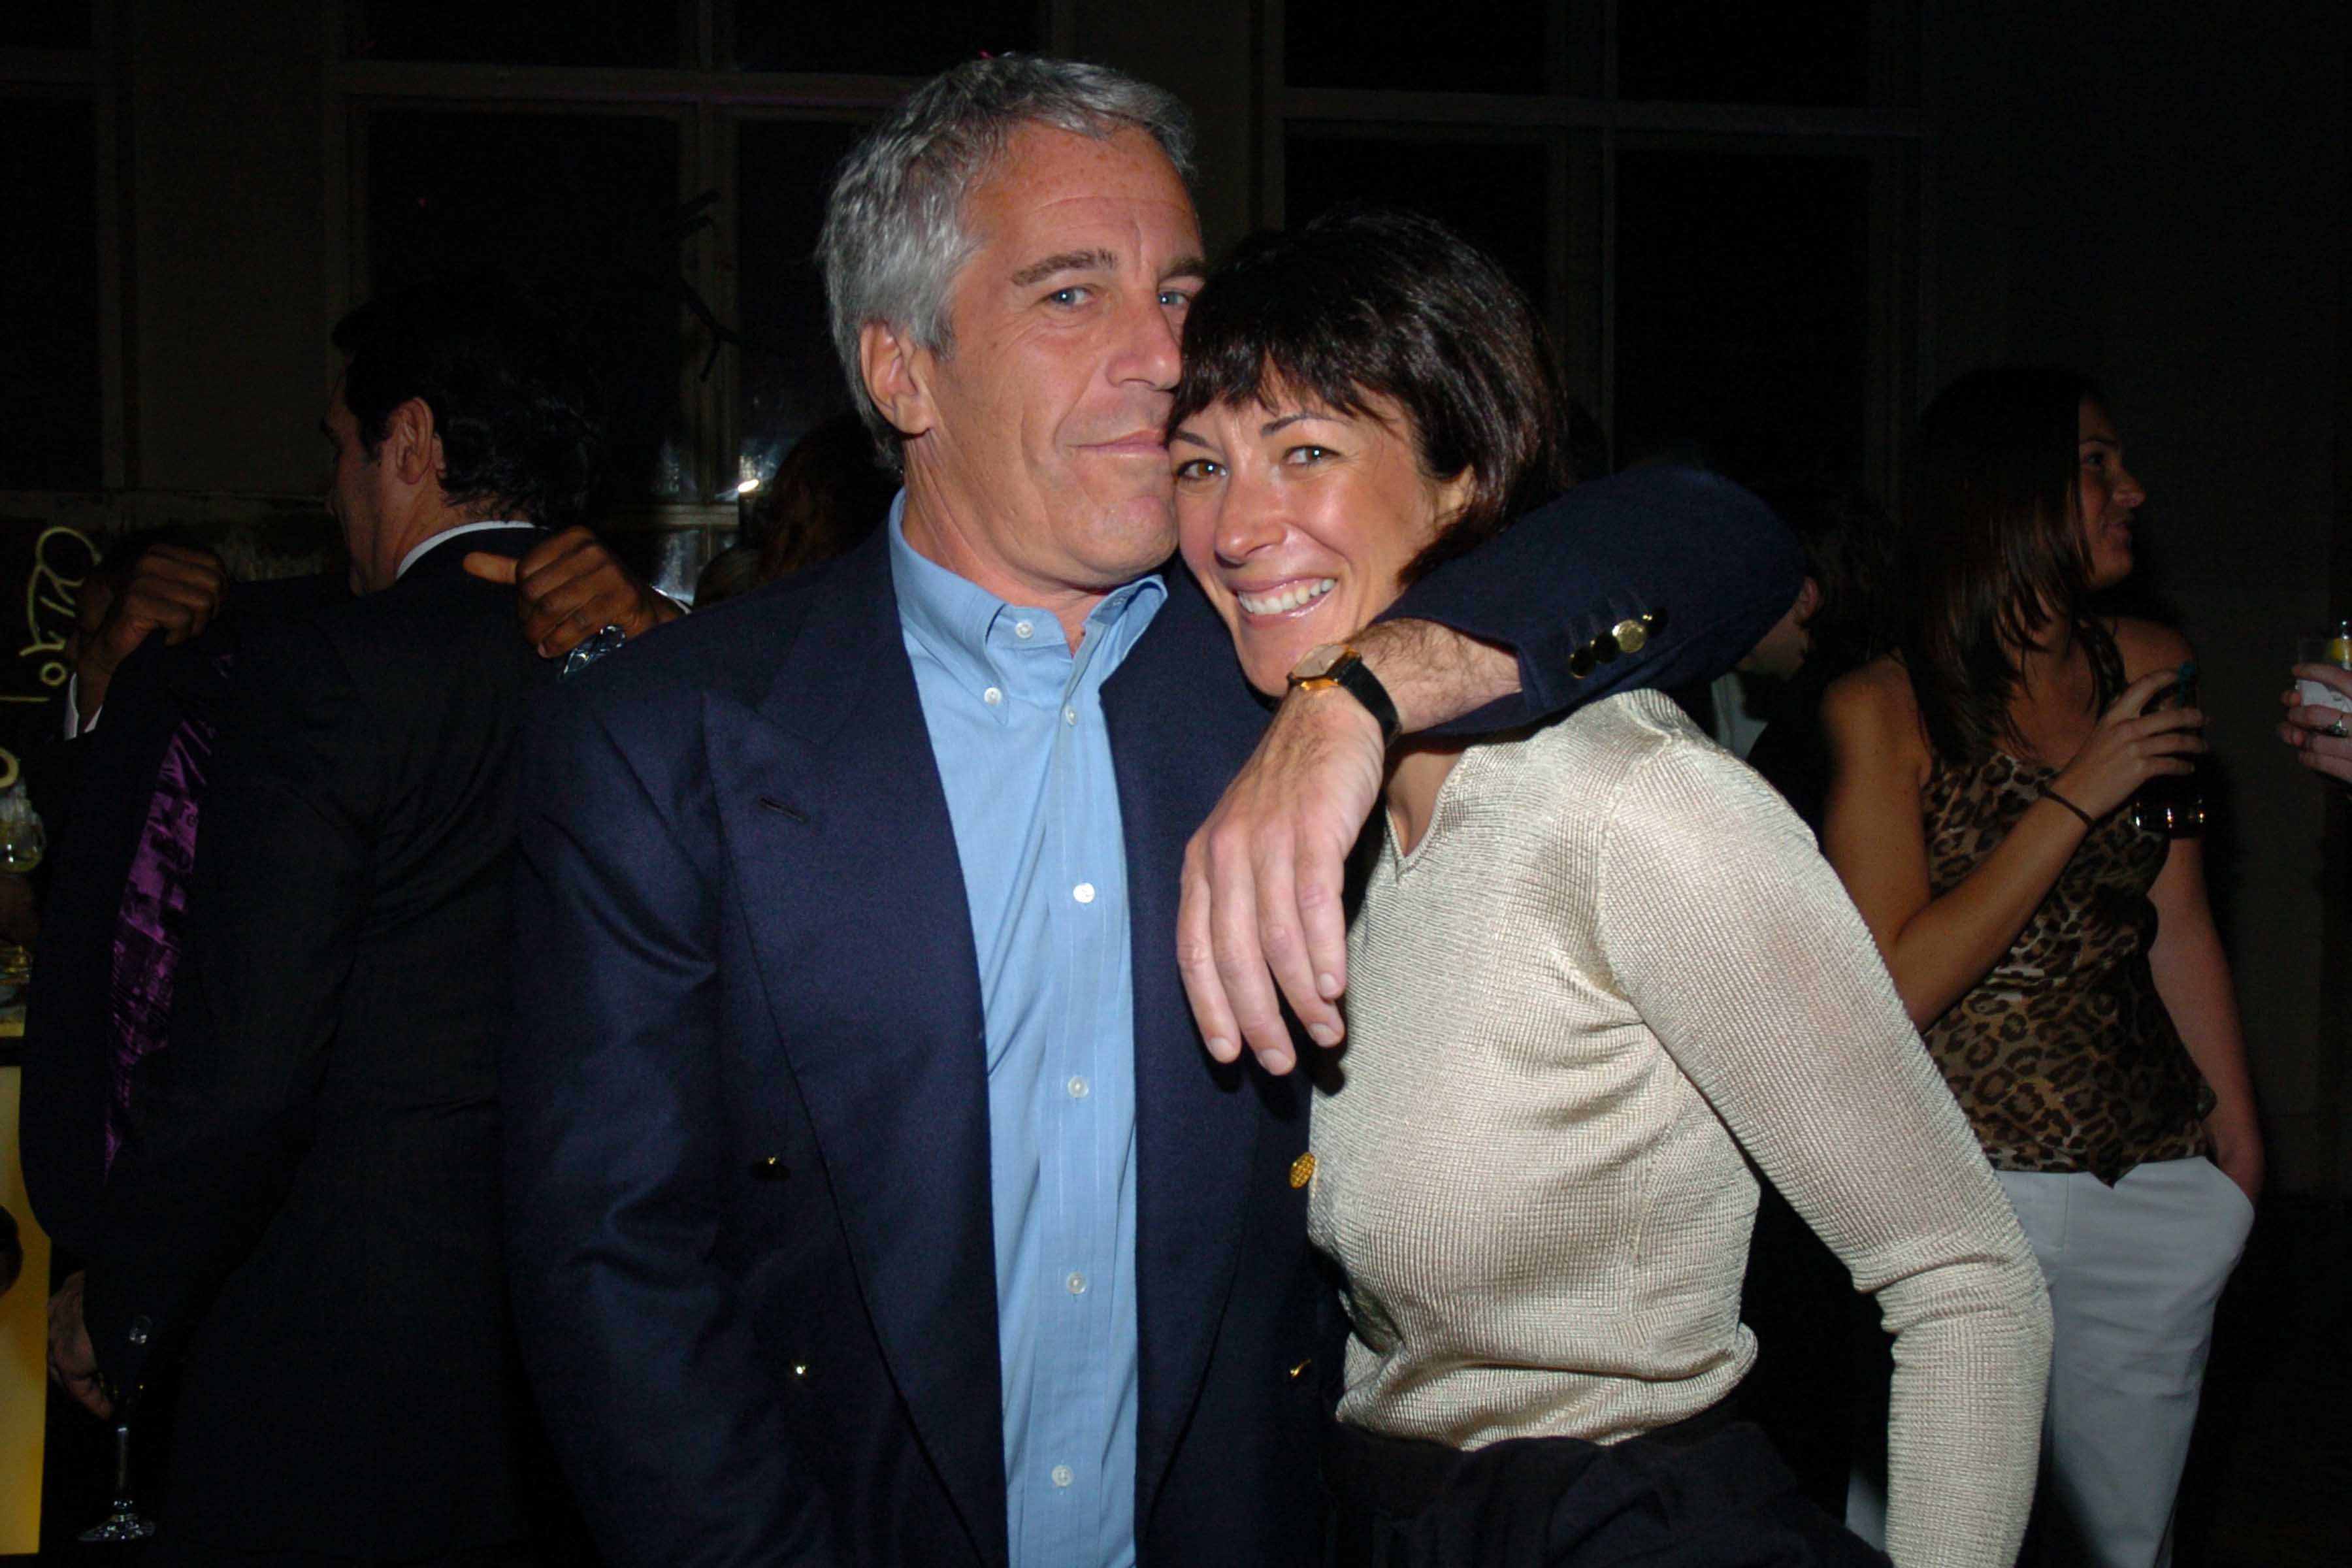 Why the Jeffrey Epstein case inspires so many conspiracy theories